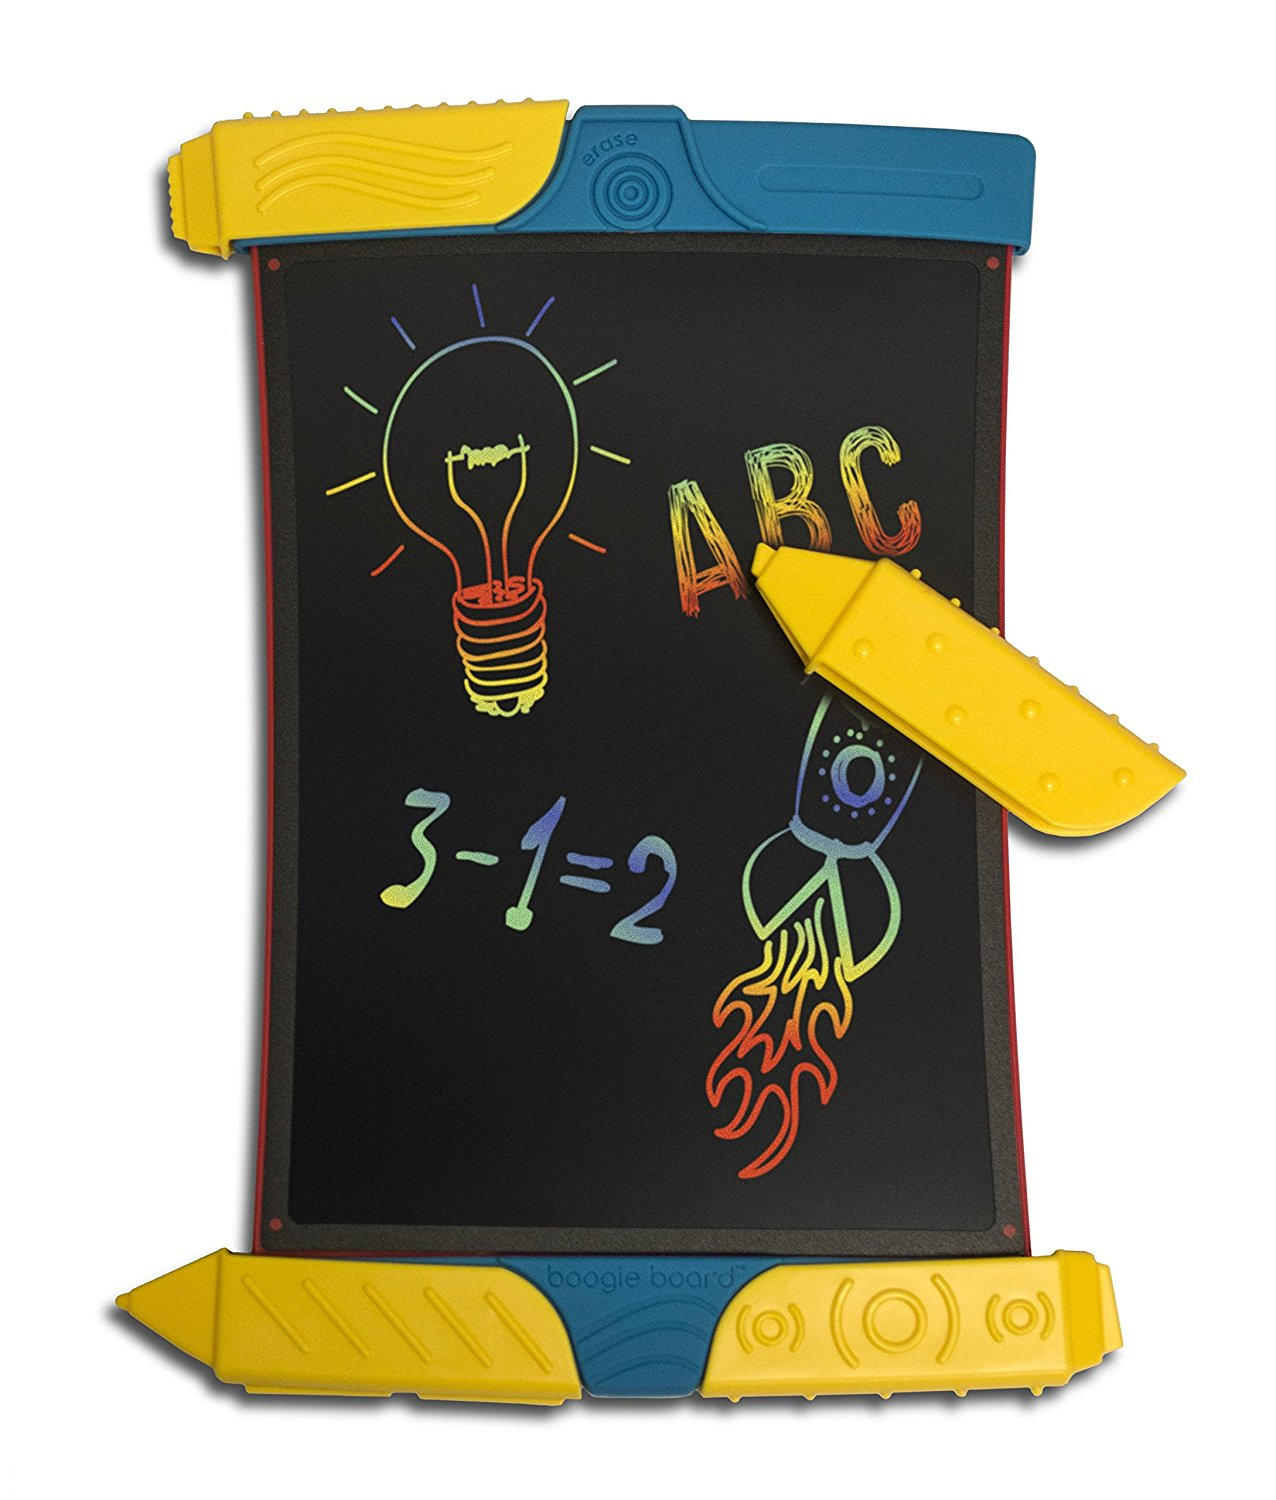 Boogie Board Scribble & Play LCD eWriter Only $19.99 (Reg $24.99) + Free Store Pickup at Target.com!